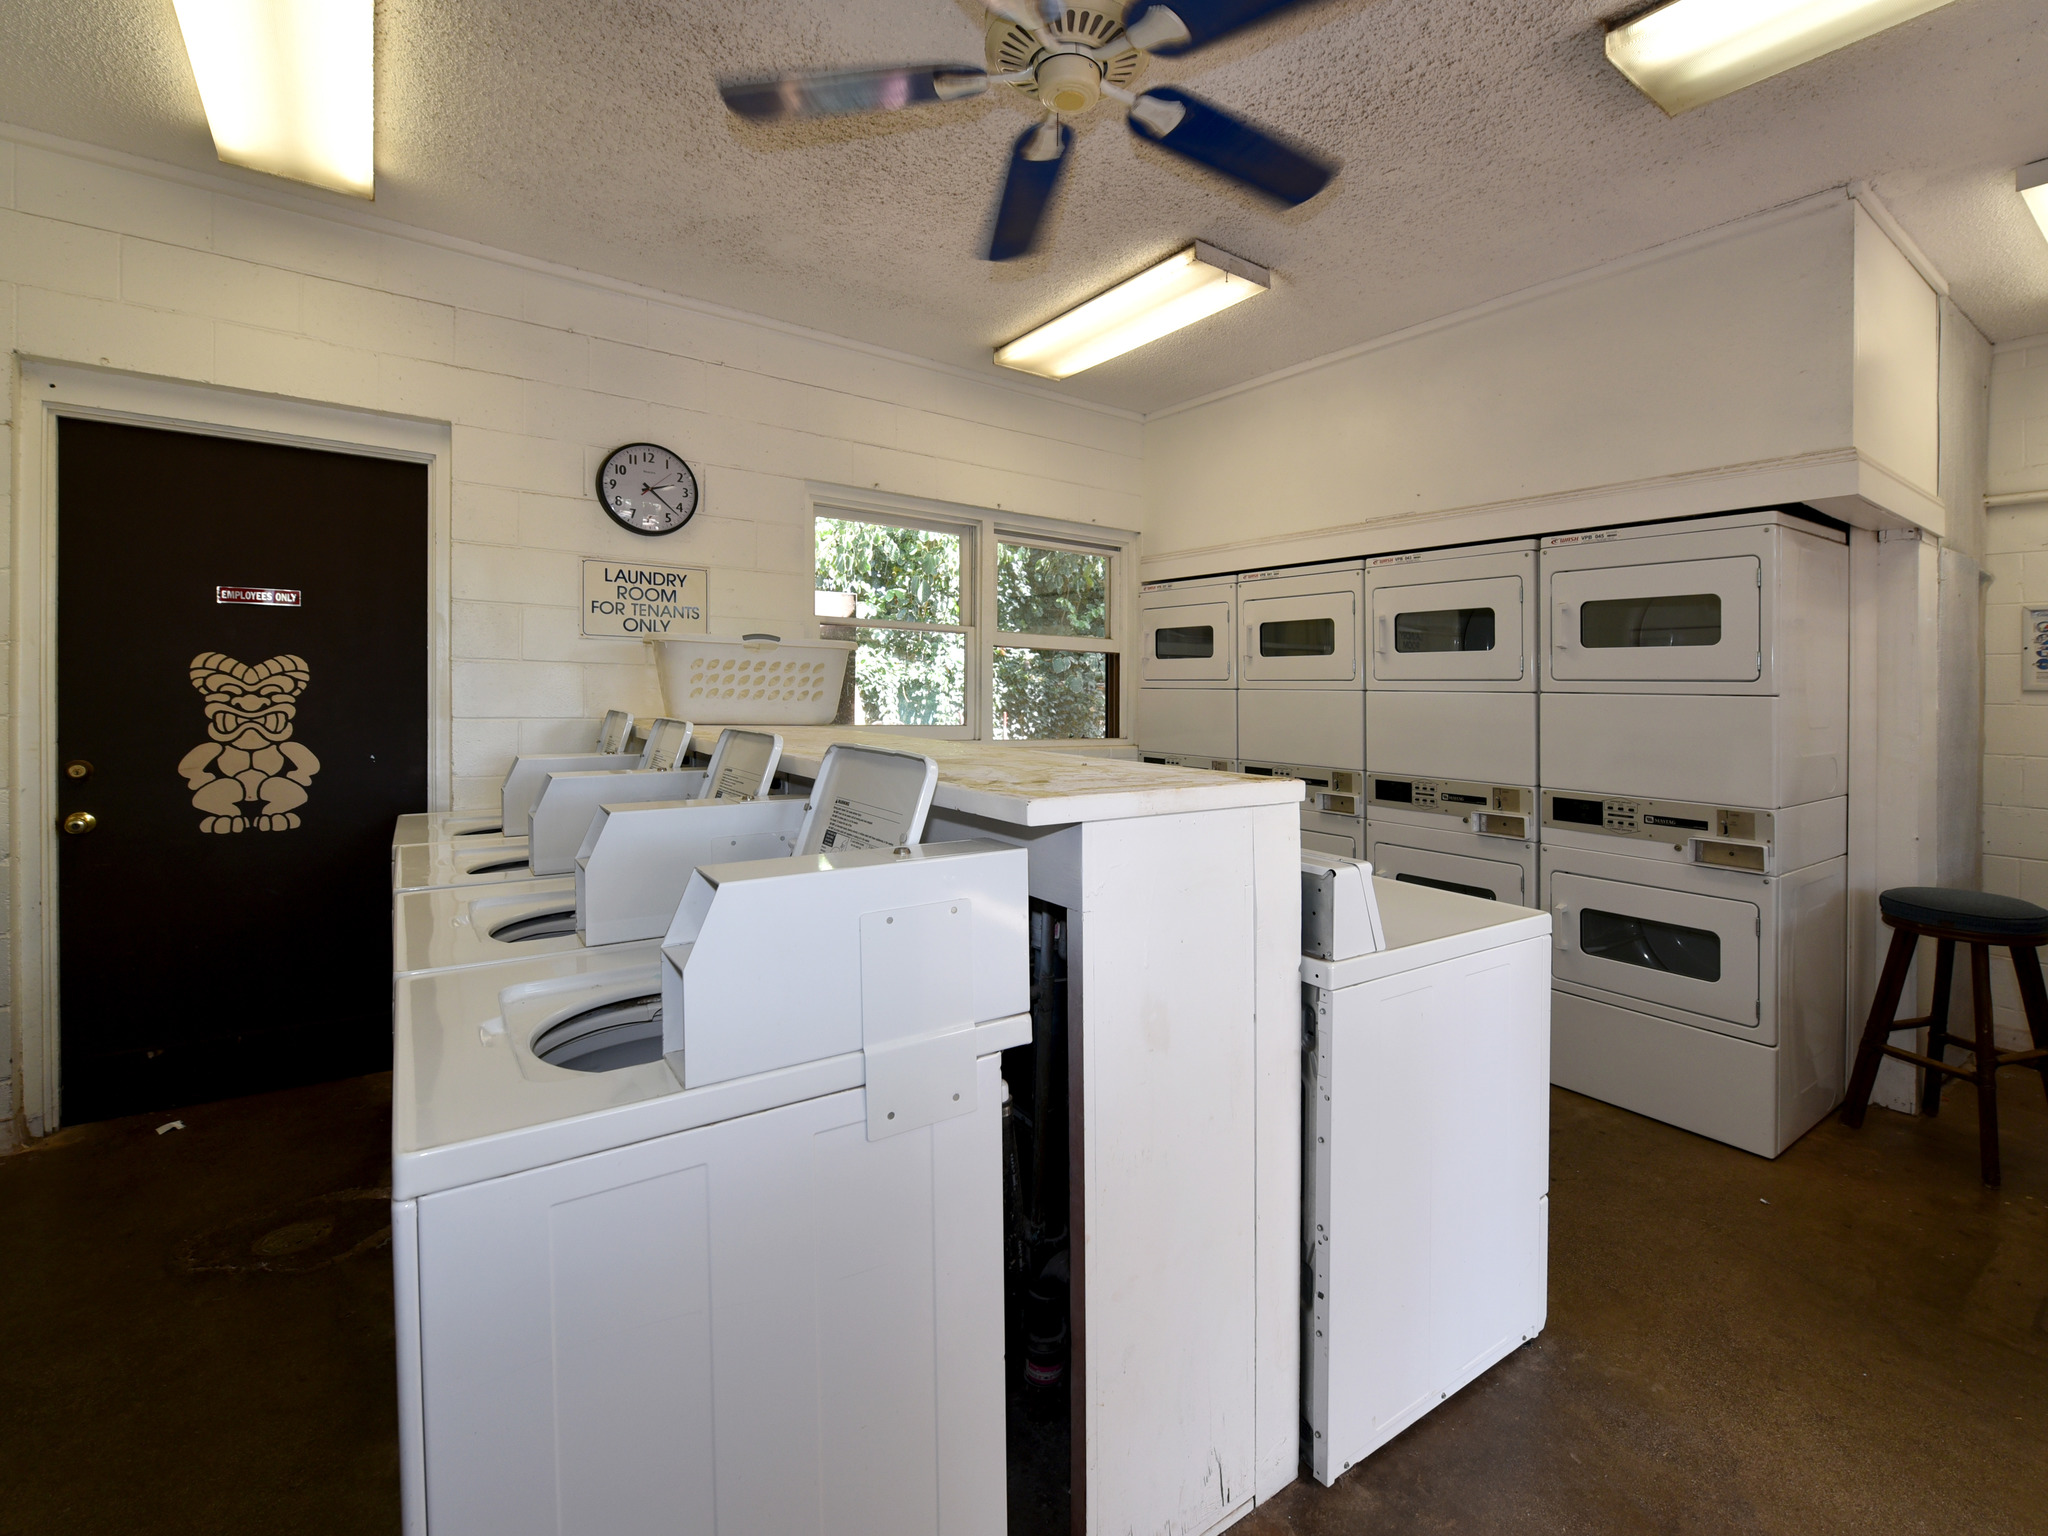 Spinnaker 216c Vacation Rentals By Choice Hotels 174